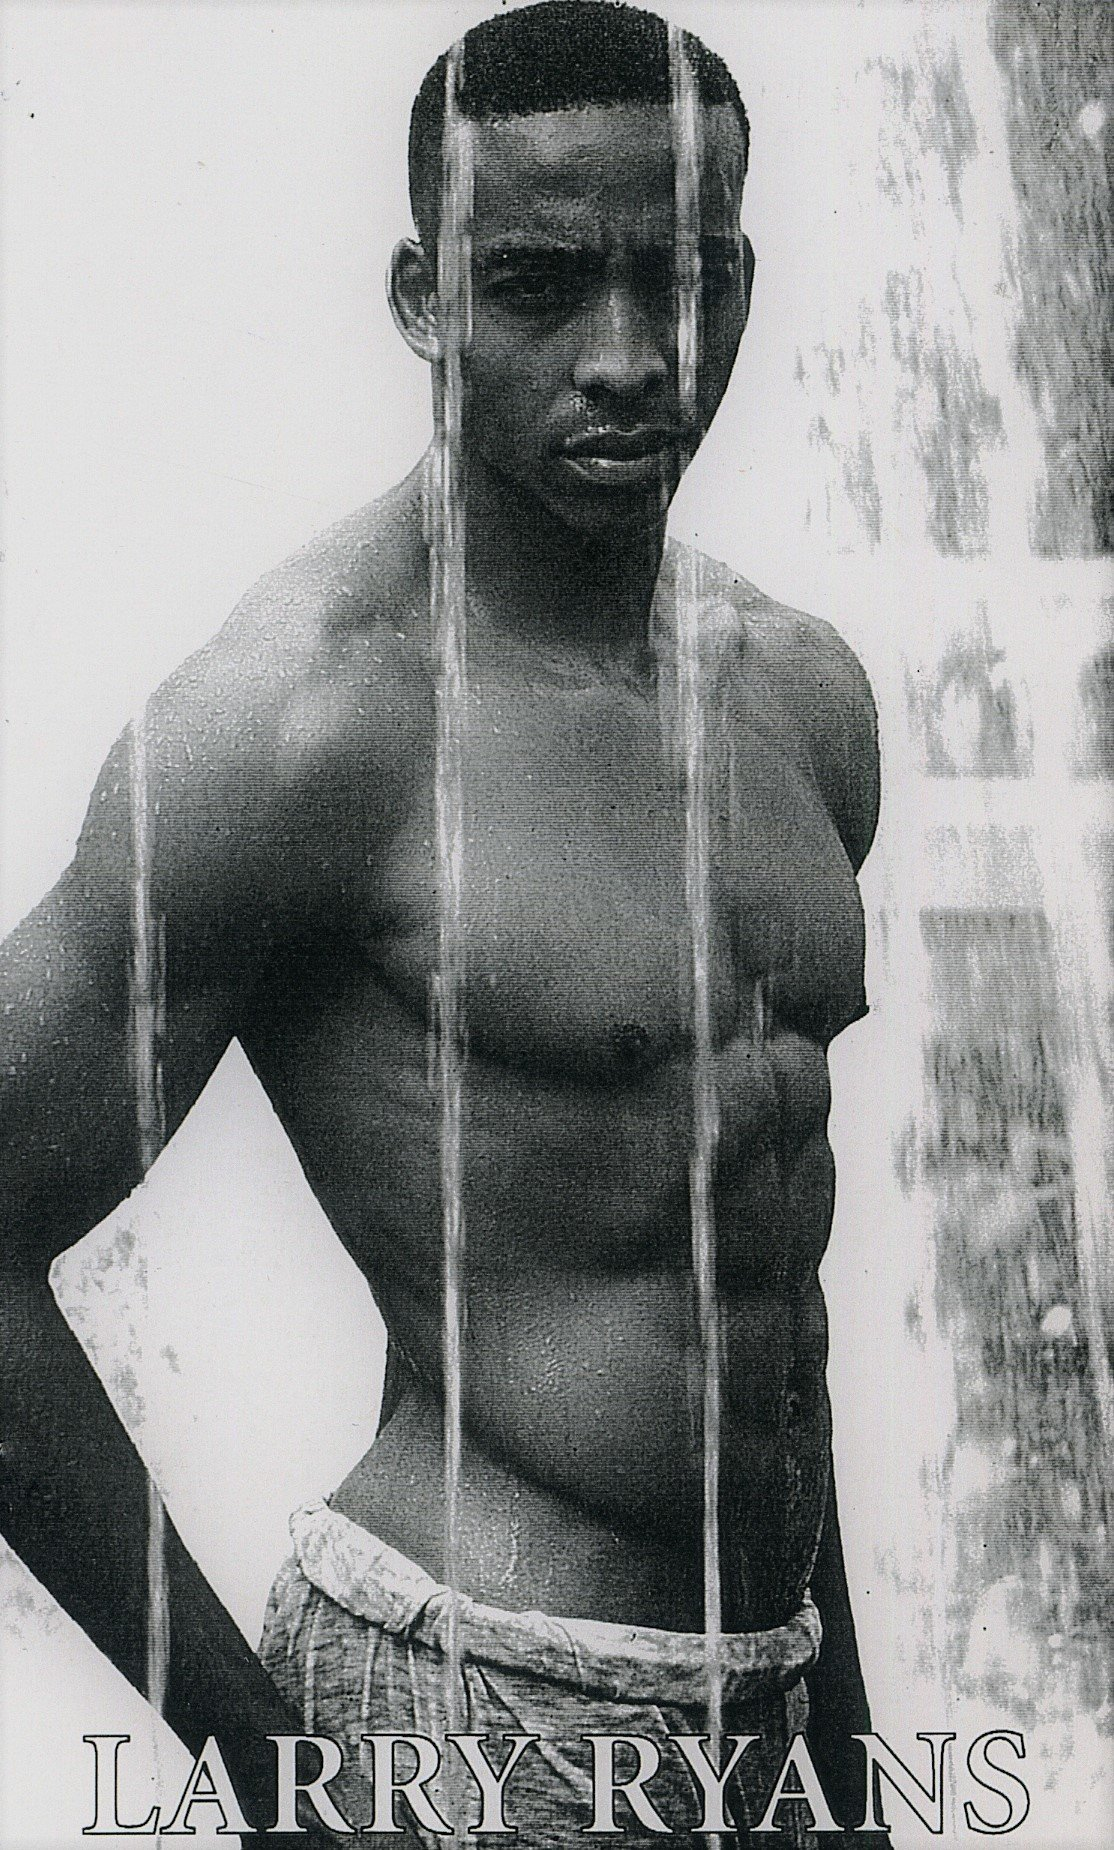 My model discovery LARRY RYANS- NFL DETROIT LIONS wide receiver and was a star athlete at CLEMSON UNIVERSITY.